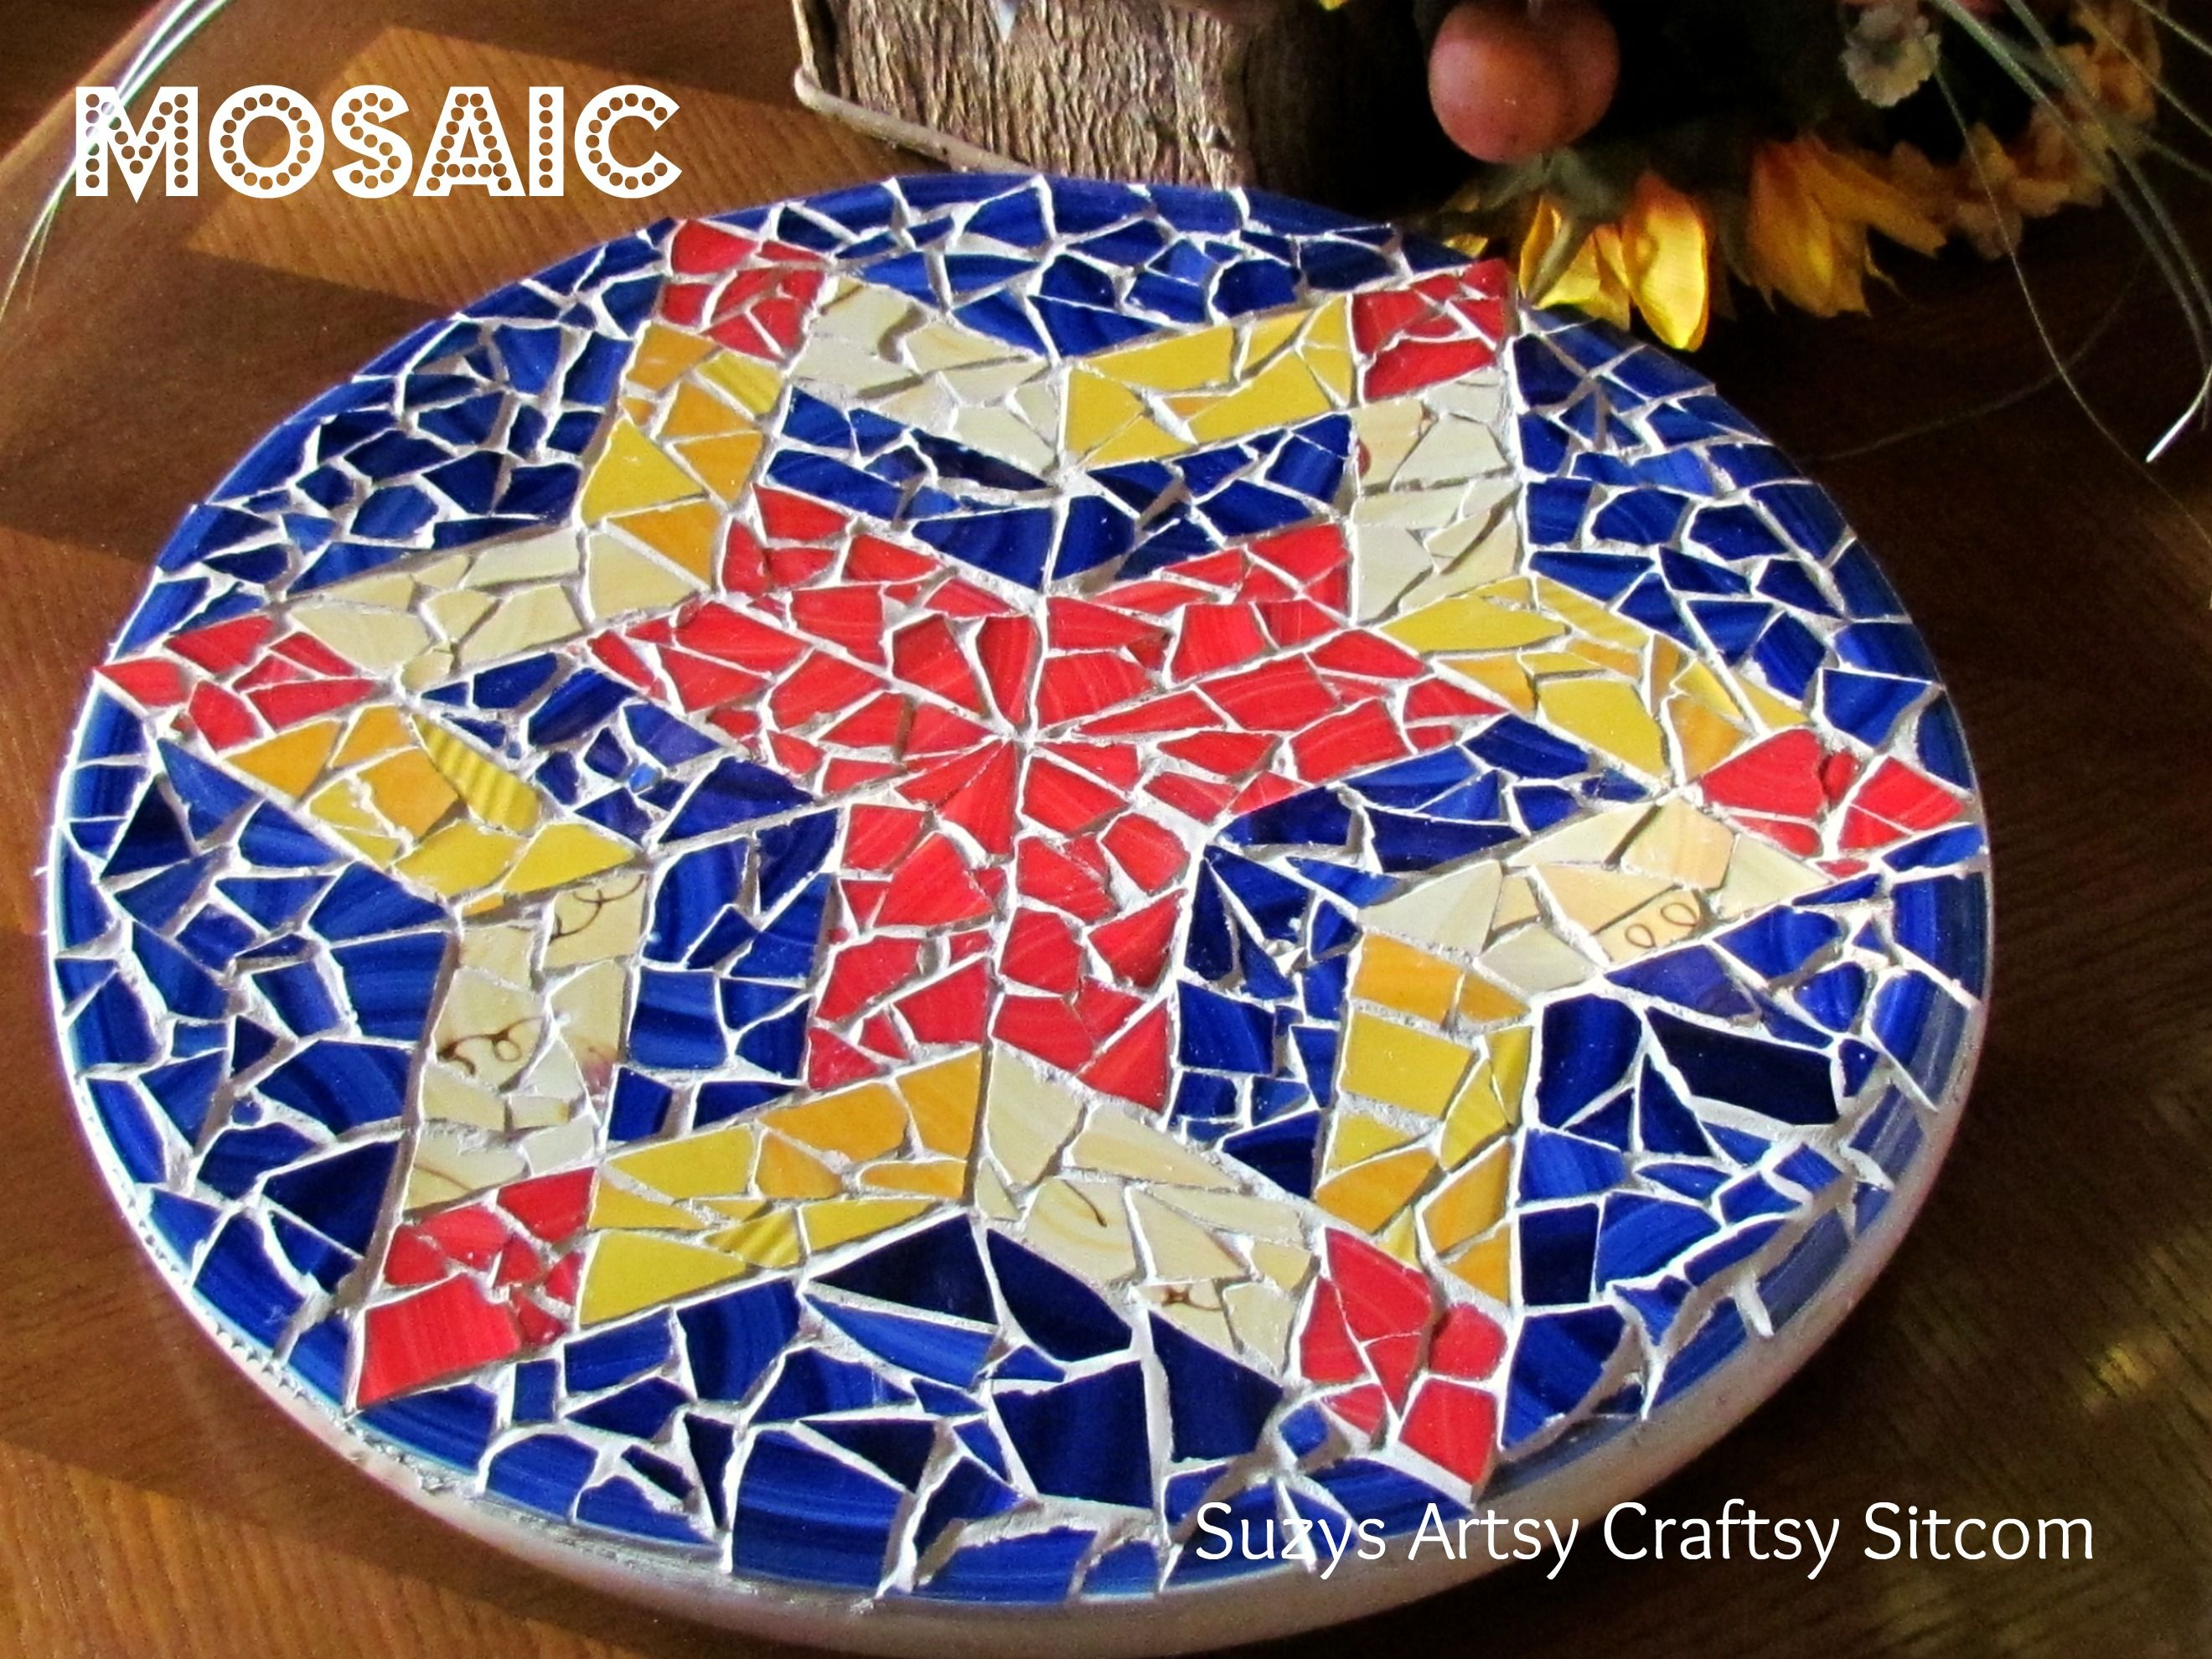 Creating mosaics the easy way mosaic diy diy tutorial and mosaics creating mosaics the easy way i think i could even do this dailygadgetfo Images